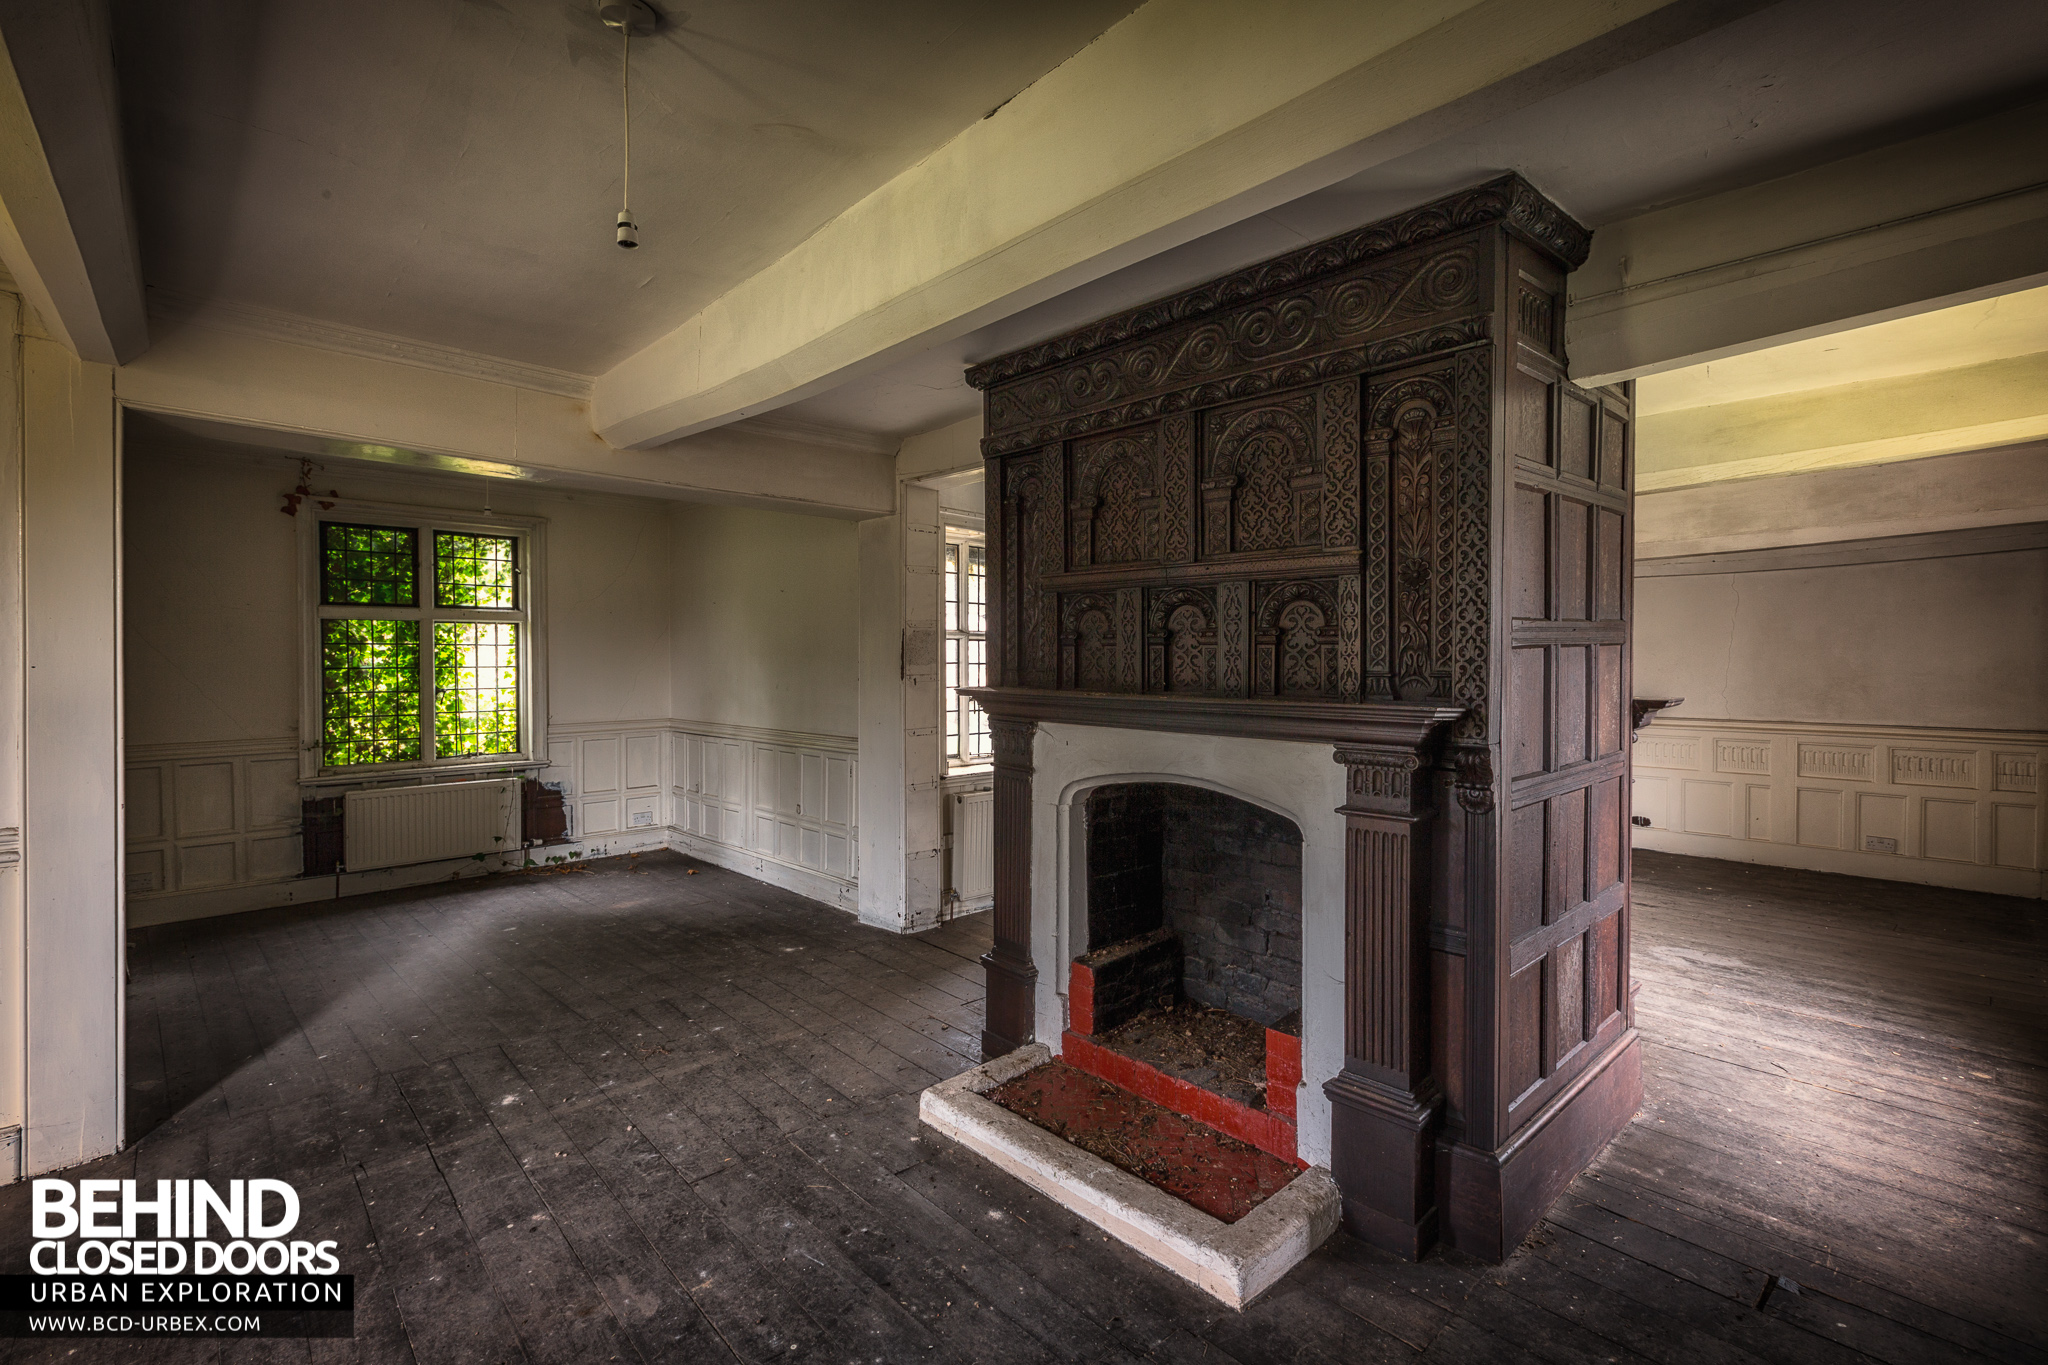 pitchford hall abandoned country house uk urbex behind